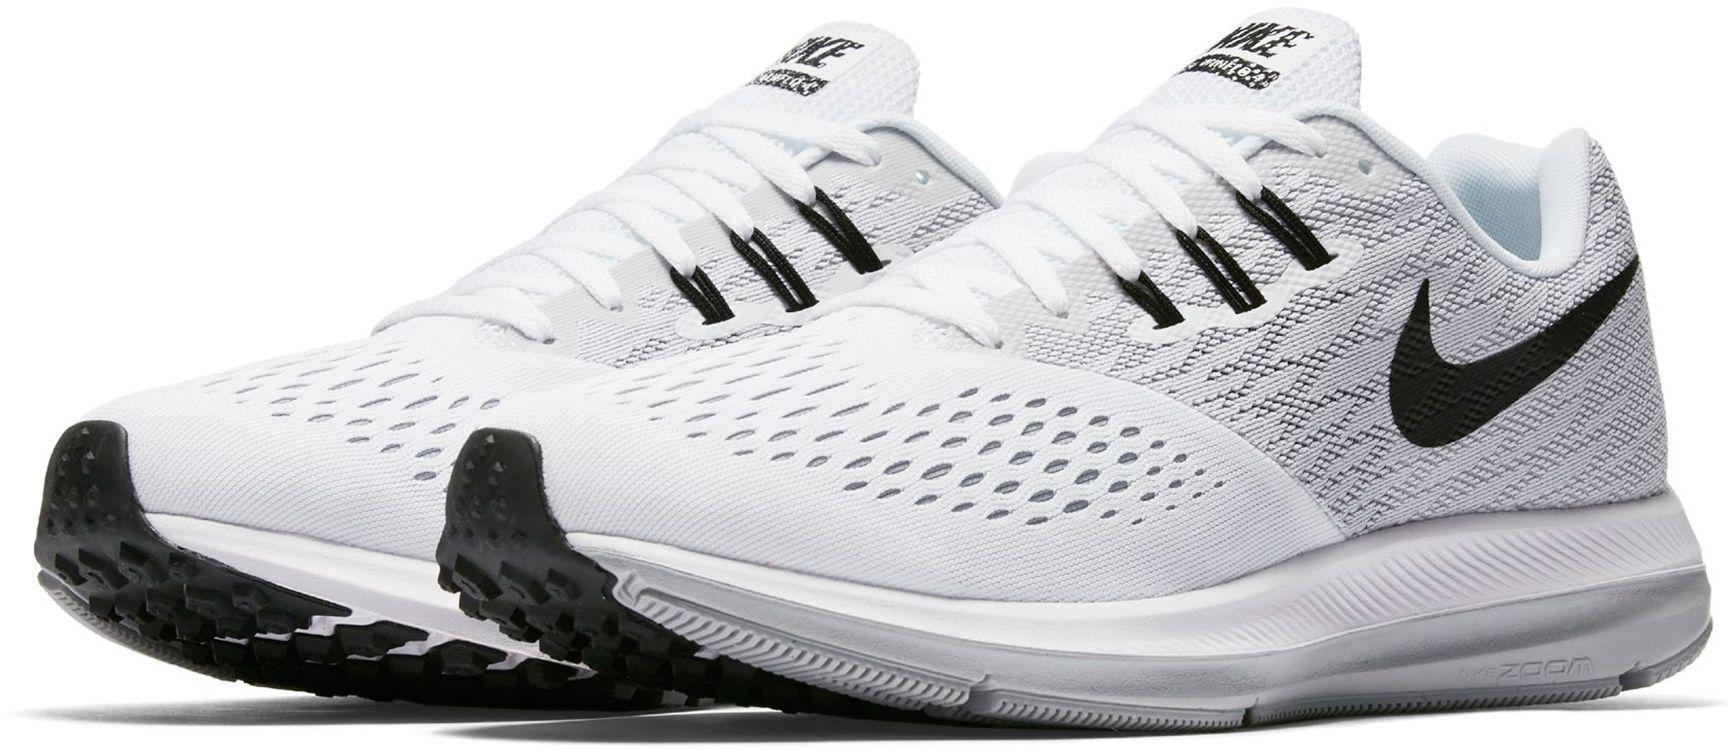 5c278fbdc81 Lyst - Nike Air Zoom Winflo 4 Running Shoes in White for Men